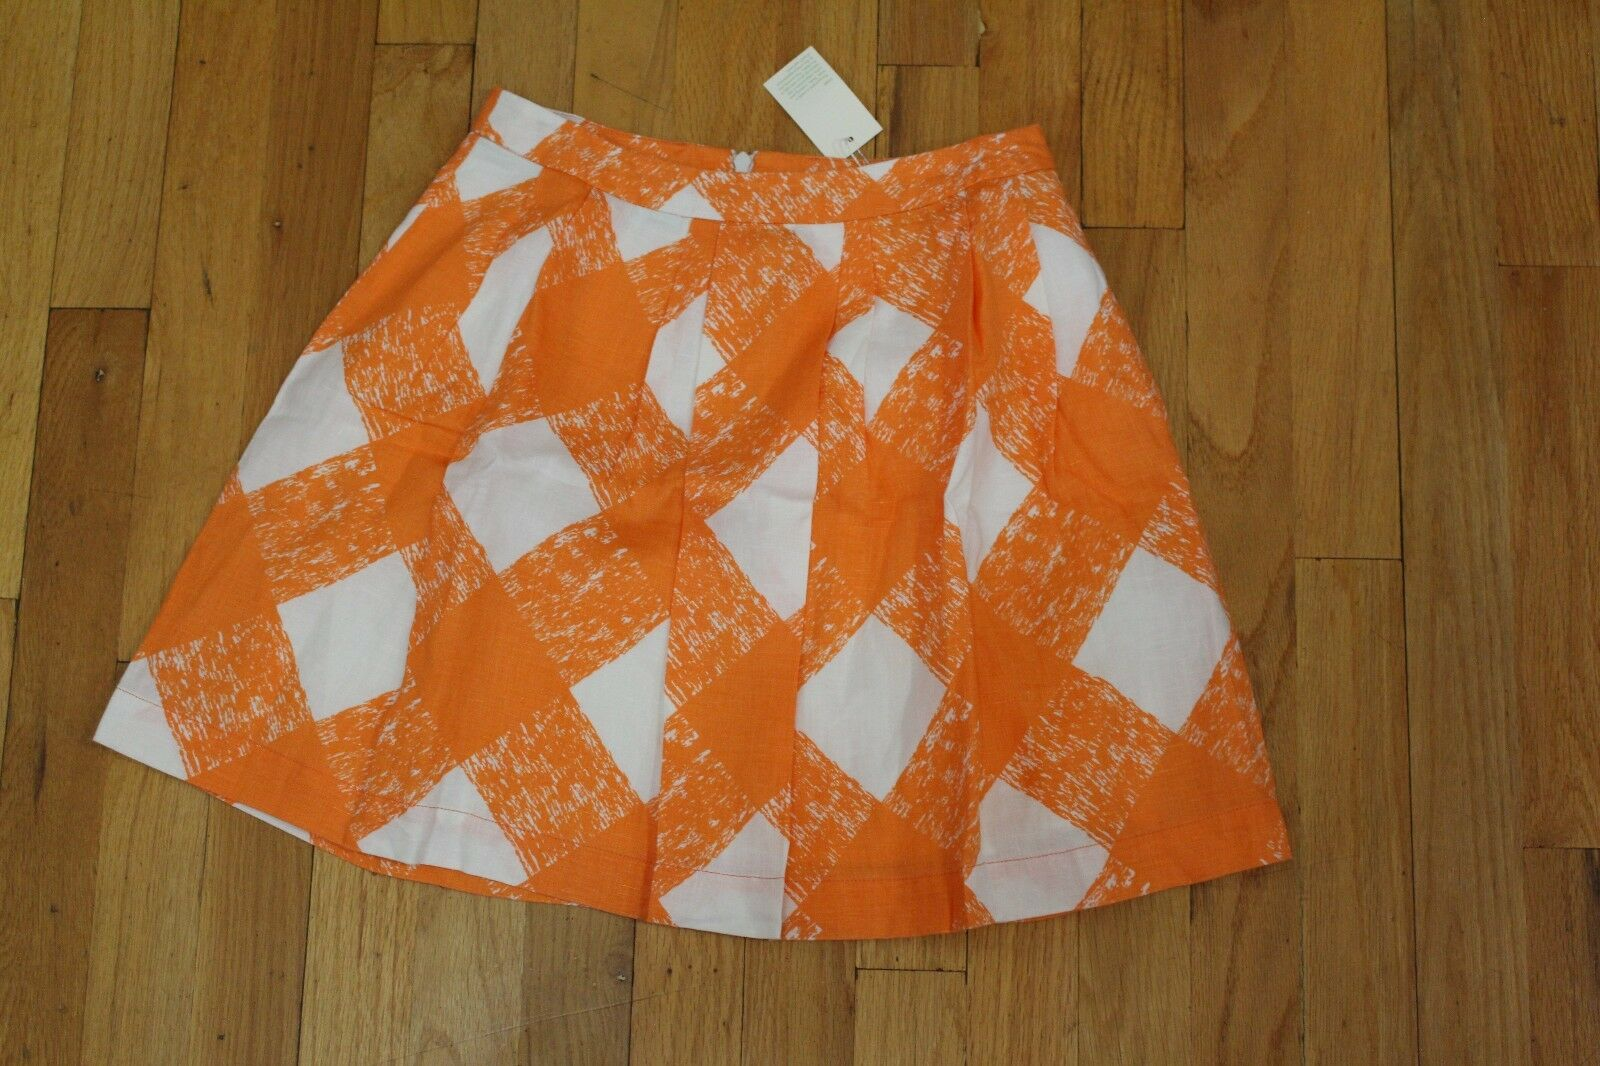 BODEN orange JAFFA PAINTED CHEK LILY MINI SKIRT SIZE 2 US NEW WITH TAGS